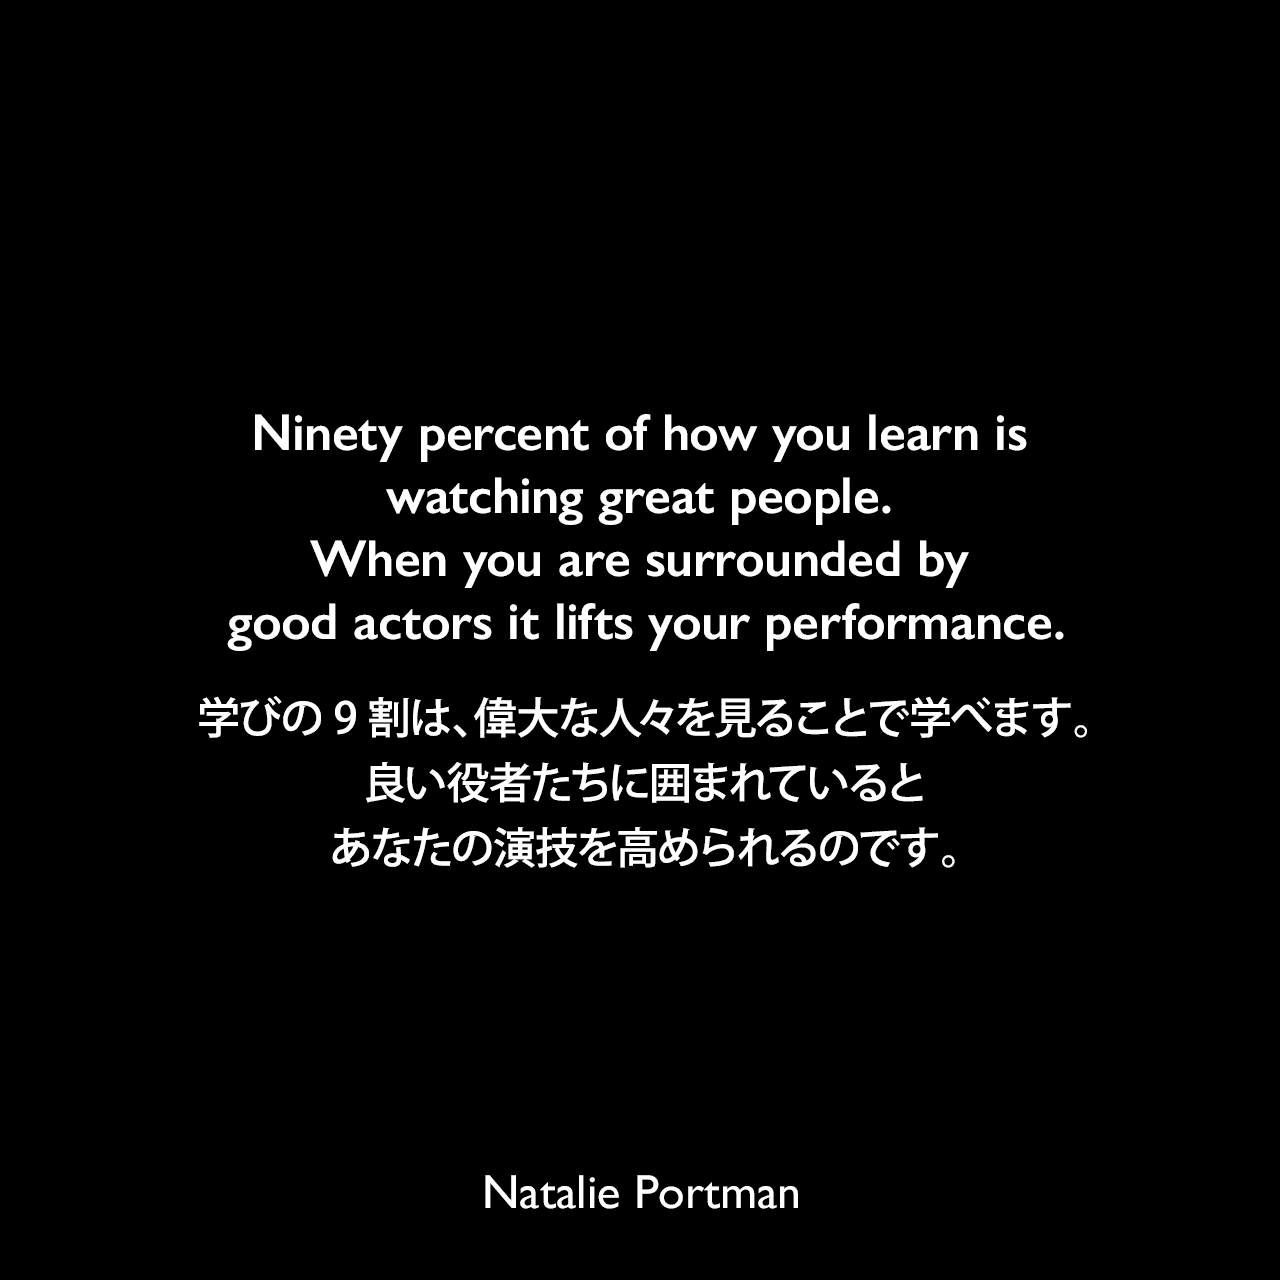 Ninety percent of how you learn is watching great people. When you are surrounded by good actors it lifts your performance.学びの9割は、偉大な人々を見ることで学べます。良い役者たちに囲まれていると、あなたの演技を高められるのです。Natalie Portman